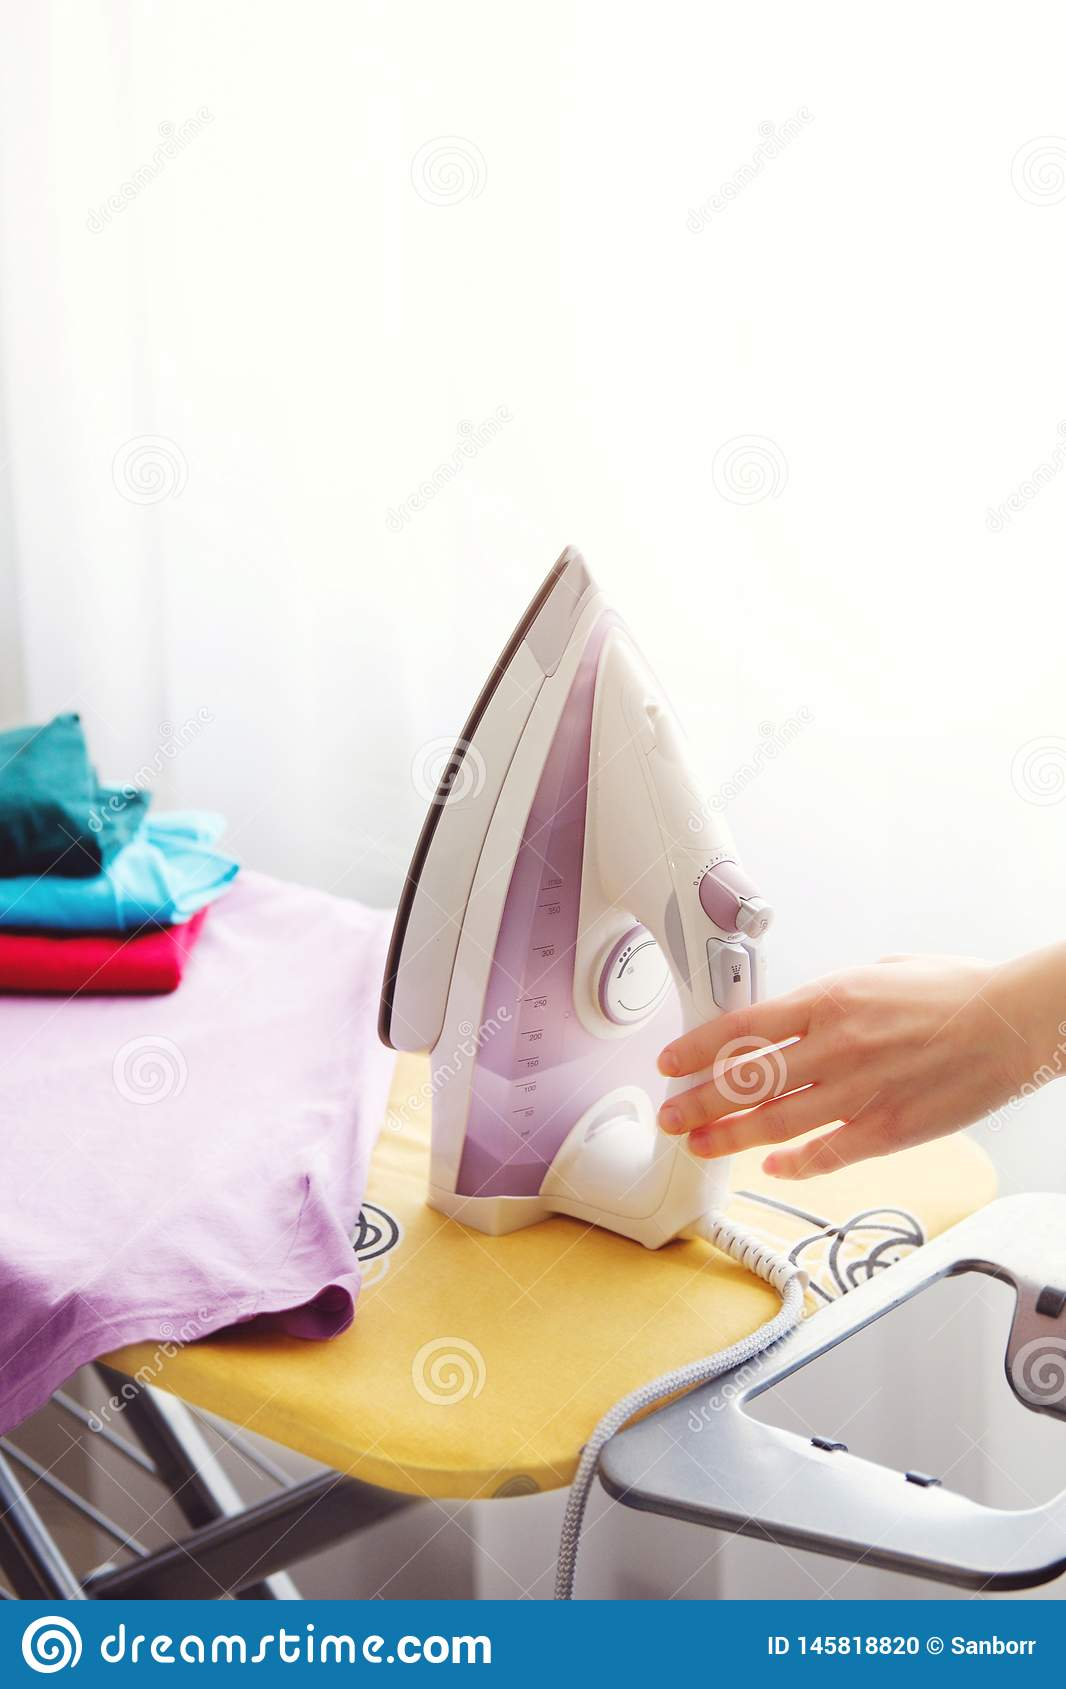 The woman the housewife irons clothes at home. On the Ironing Board iron and purple t-shirt, as well as other things of different